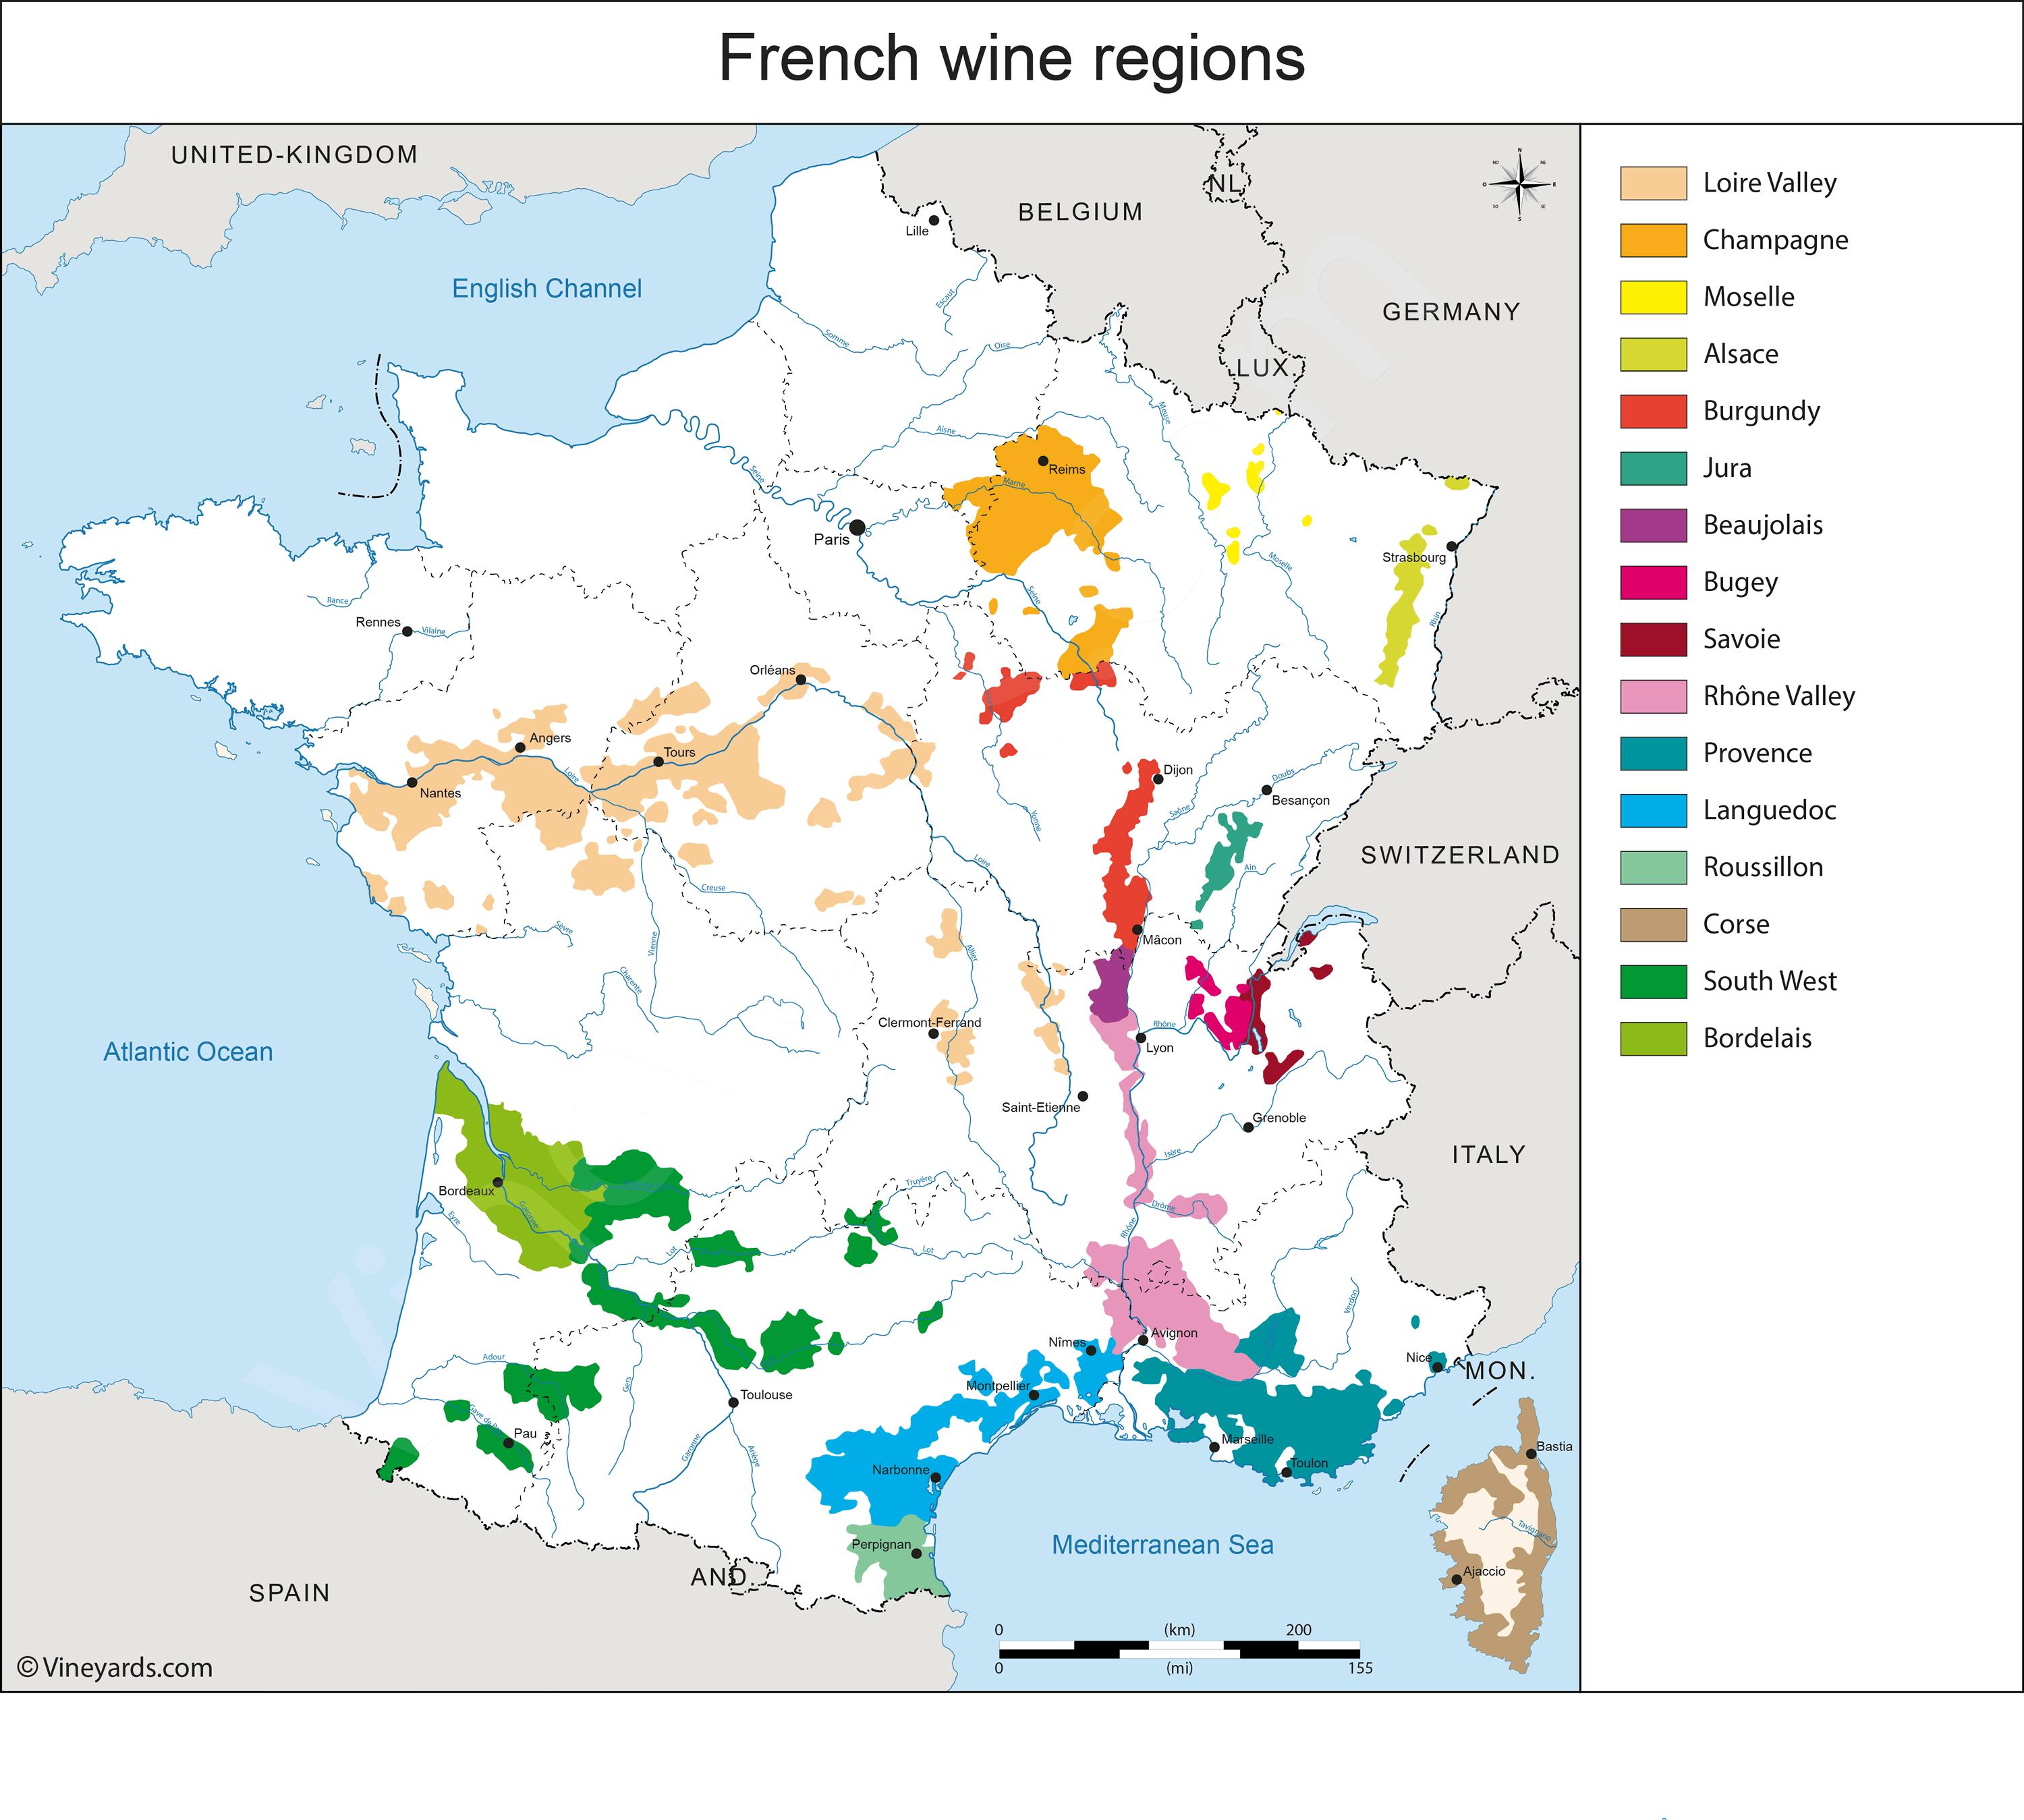 French Wine Regions Map France Map of Vineyards Wine Regions French Wine Regions Map